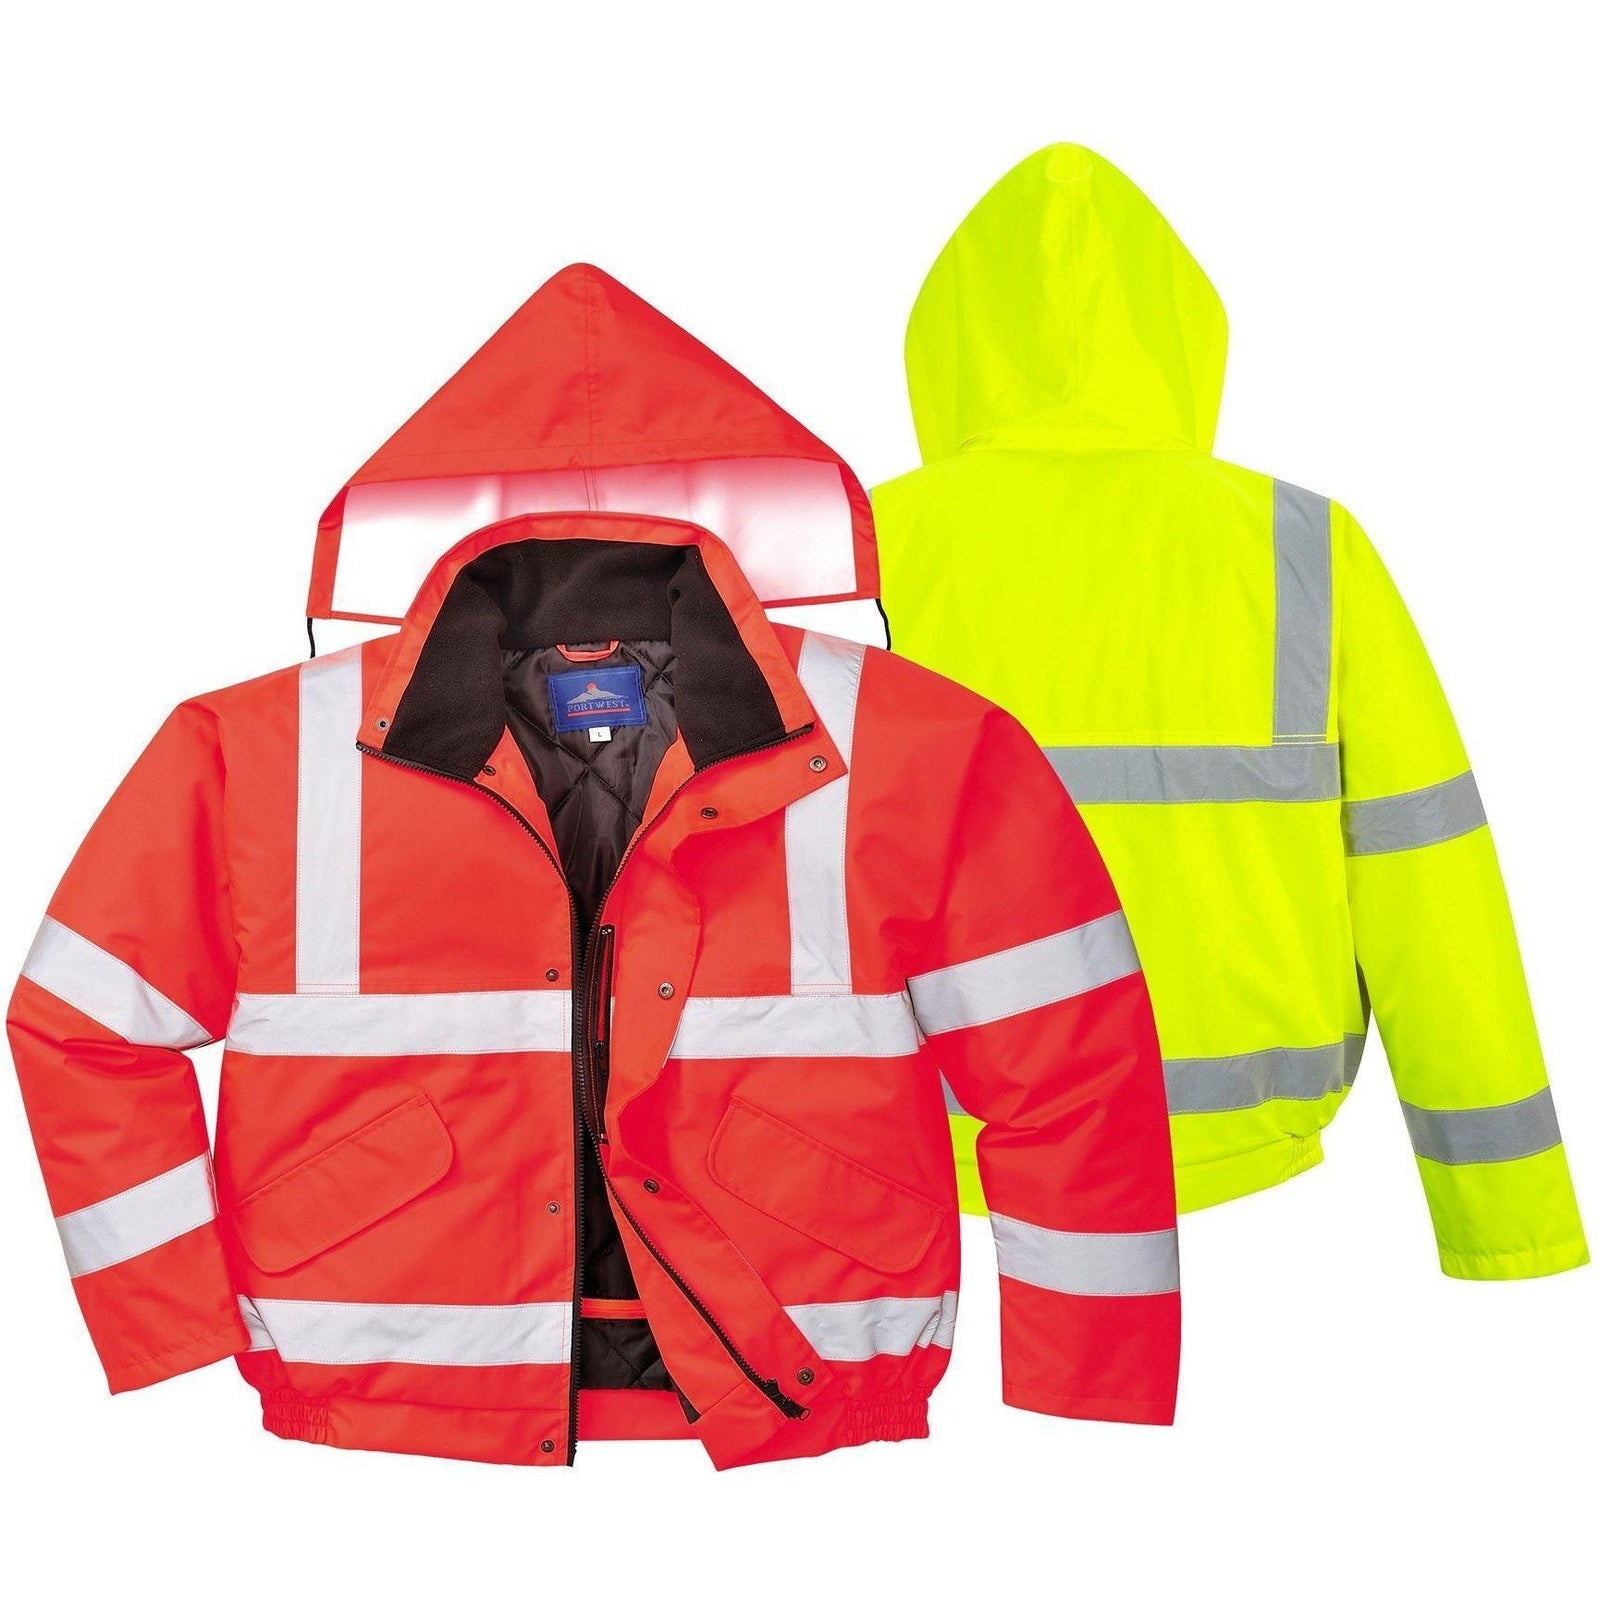 Portwest Hi-Vis Bomber Jacket S463 - reid outdoors